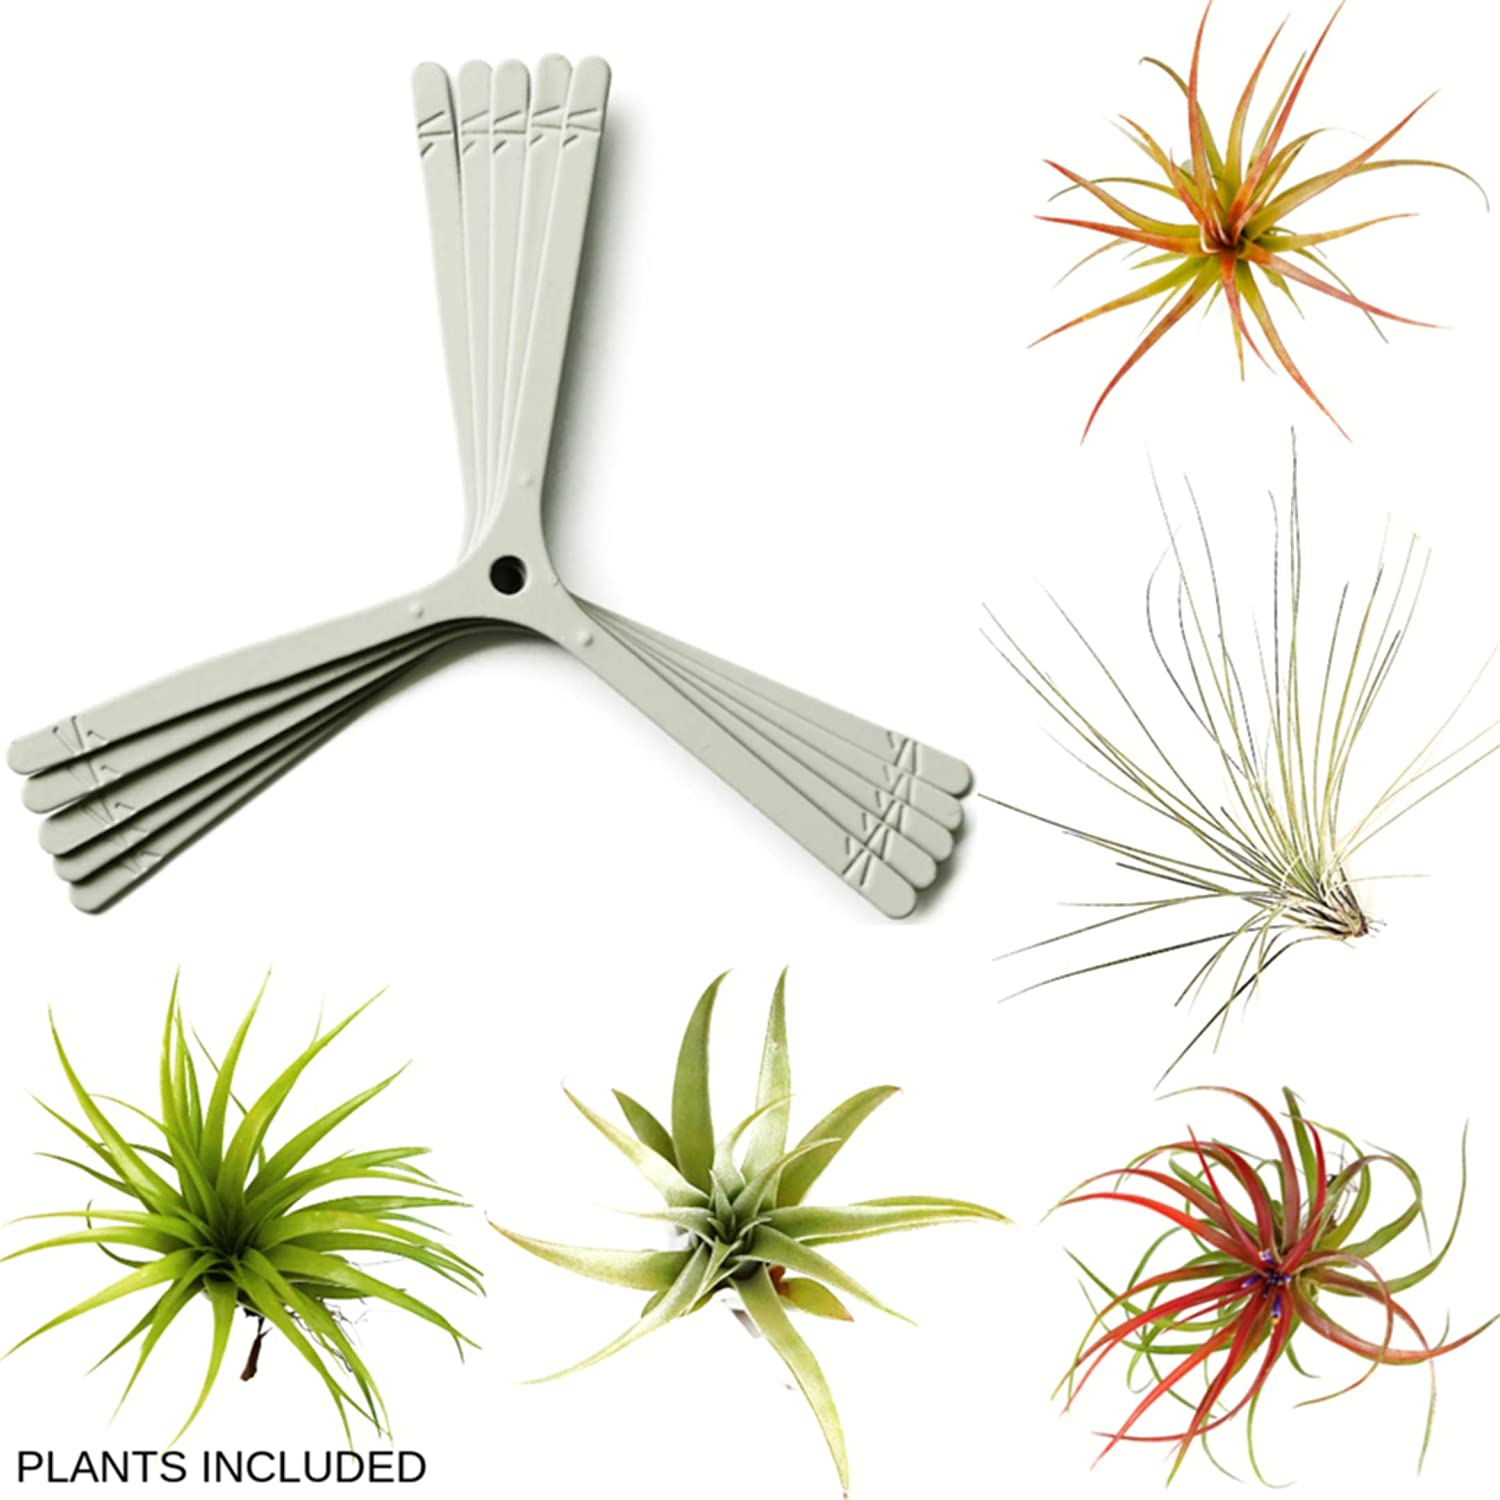 ArtAK 10 Pcs Wall Planter Kit 5 Hanging Air Plant Holder Air Knots 5 Large Tillandsia Live Air Plants Houseplants Home Decor Accents Vertical Garden Terrarium Indoors and Outdoors Grey